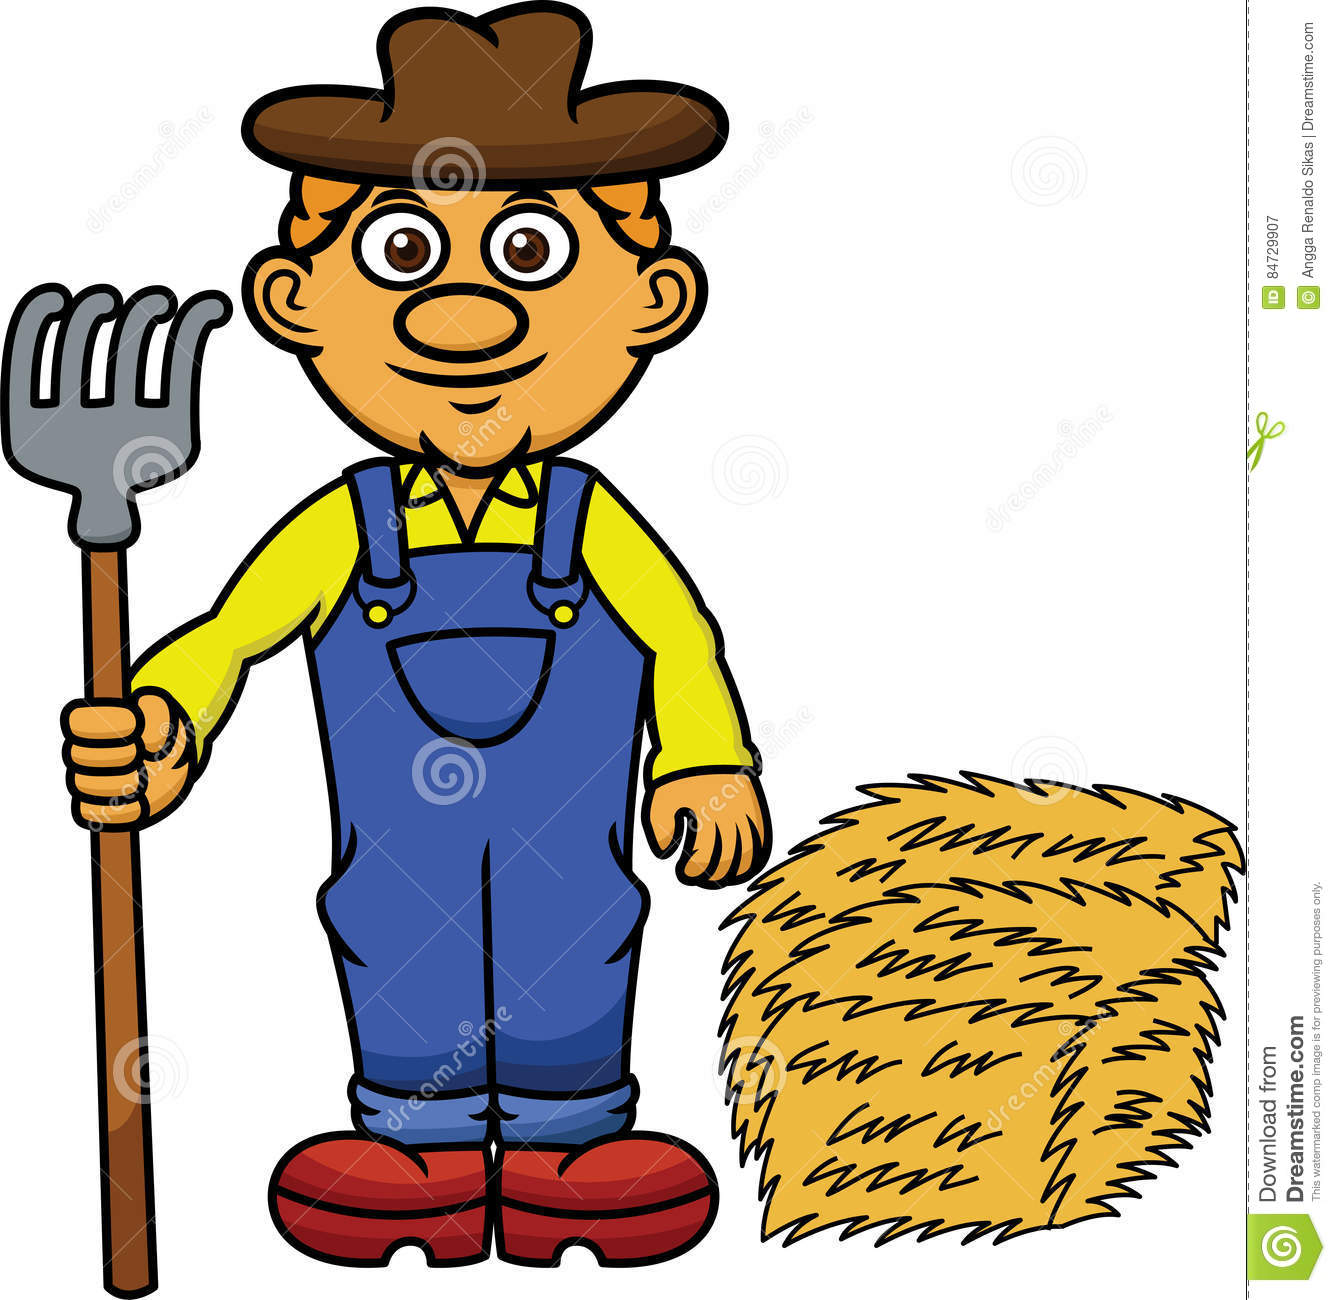 Hay Farmer Tractor Cartoon : Farmer with pitchfork and hay cartoon stock vector